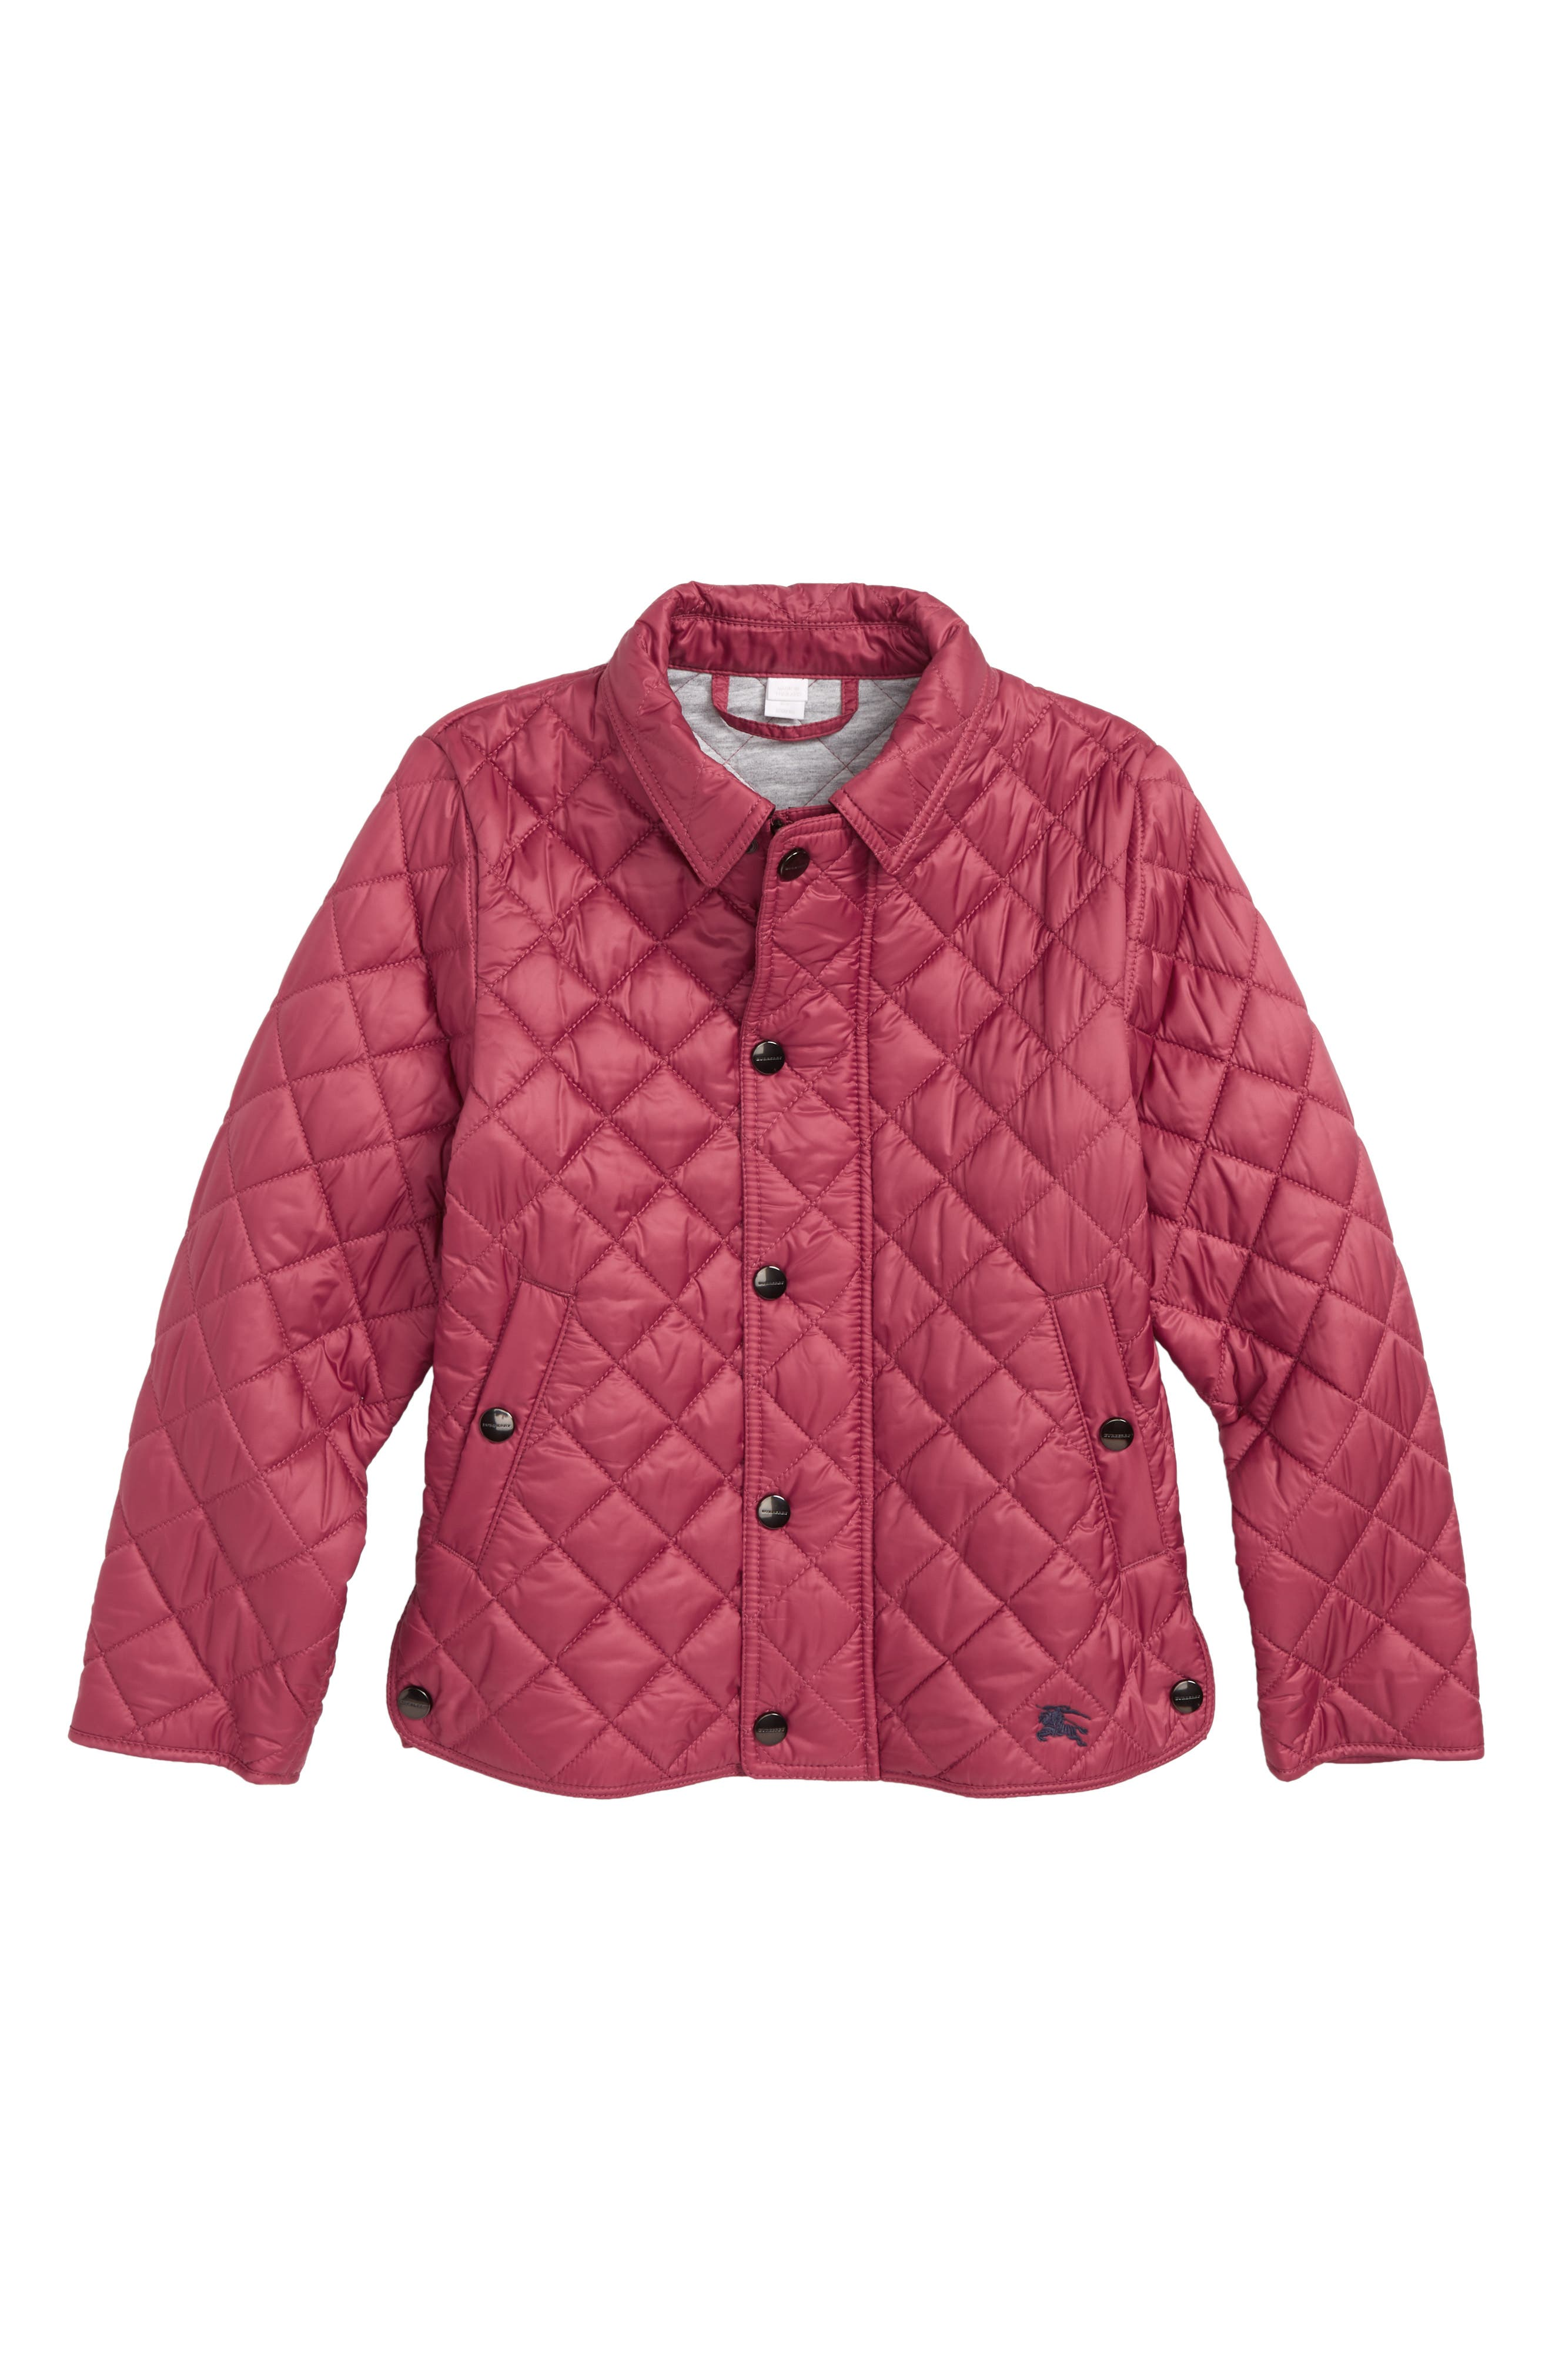 Lyle Diamond Quilted Jacket,                             Main thumbnail 1, color,                             651